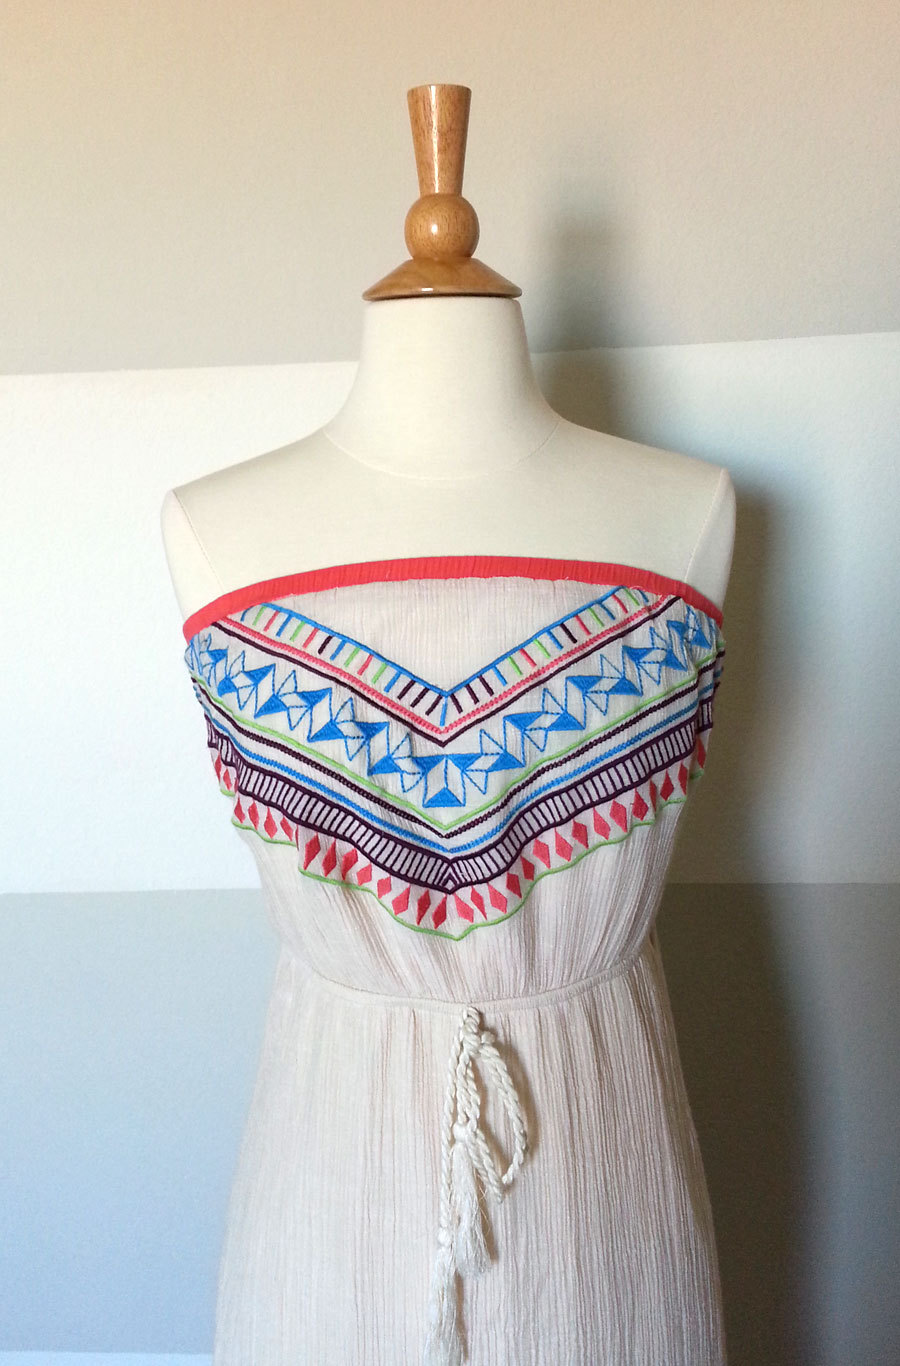 Boho paisley tribal IndianAmerican festival maxi dress Pink Cotton Front embroidered neck maxi dress Cotton fallsummer maxi silhouette